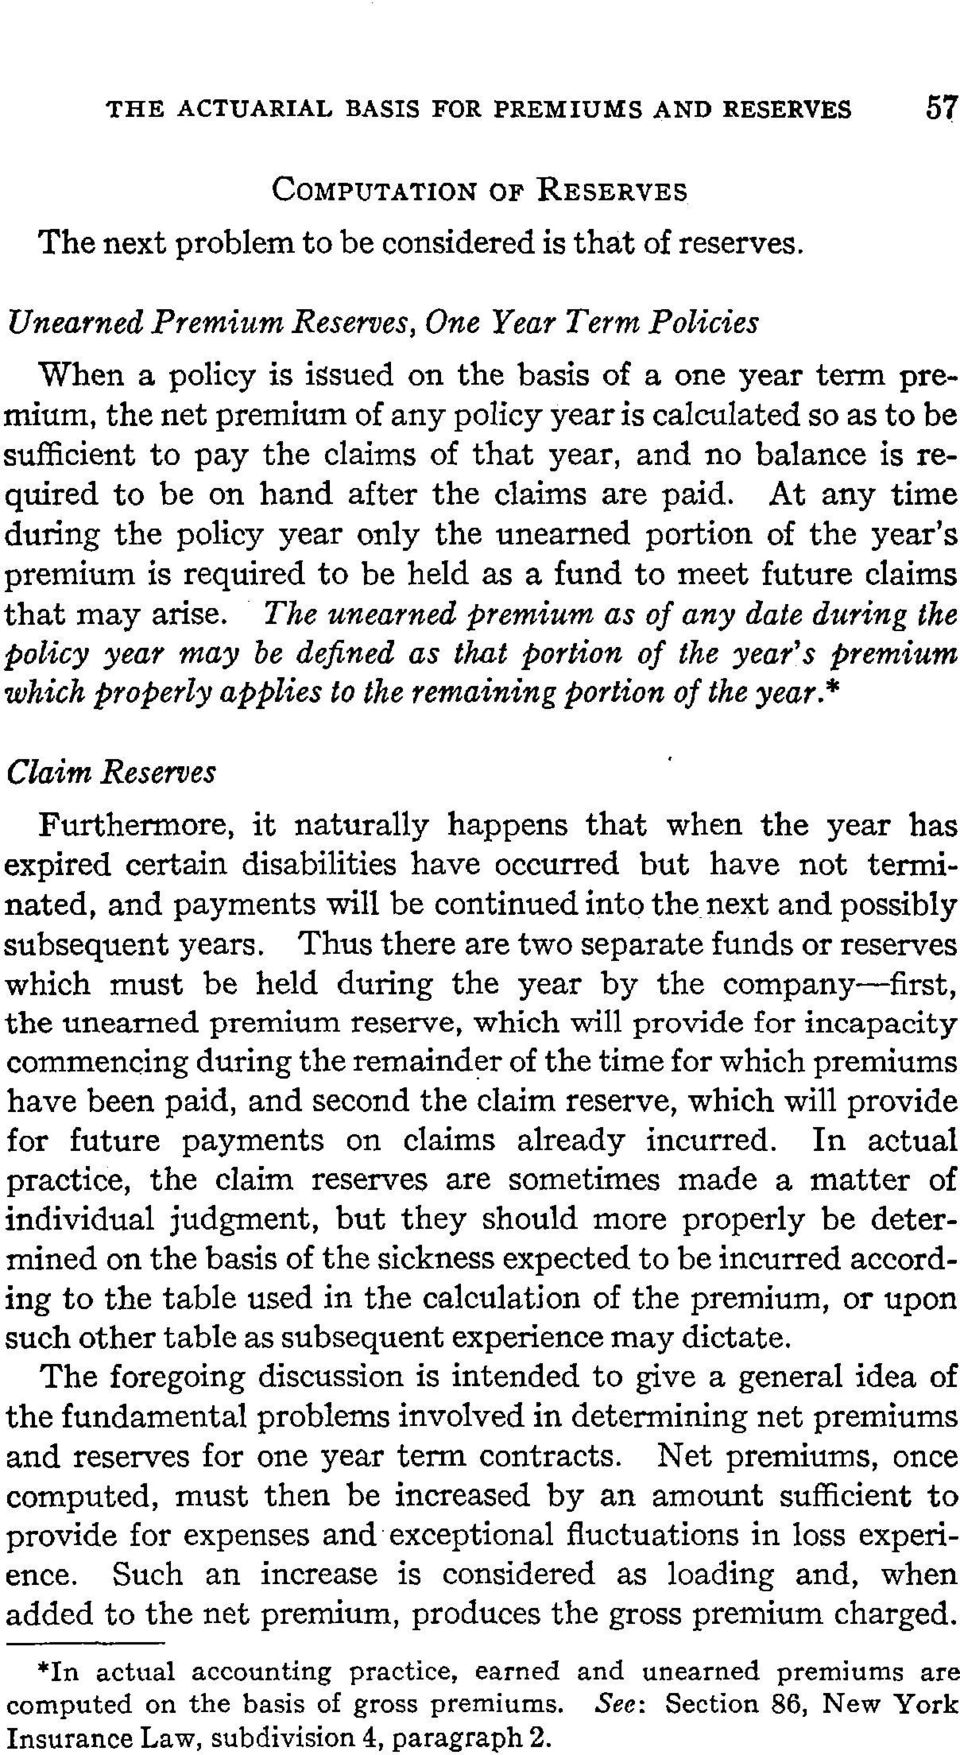 claims of that year, and no balance is required to be on hand after the claims are paid.